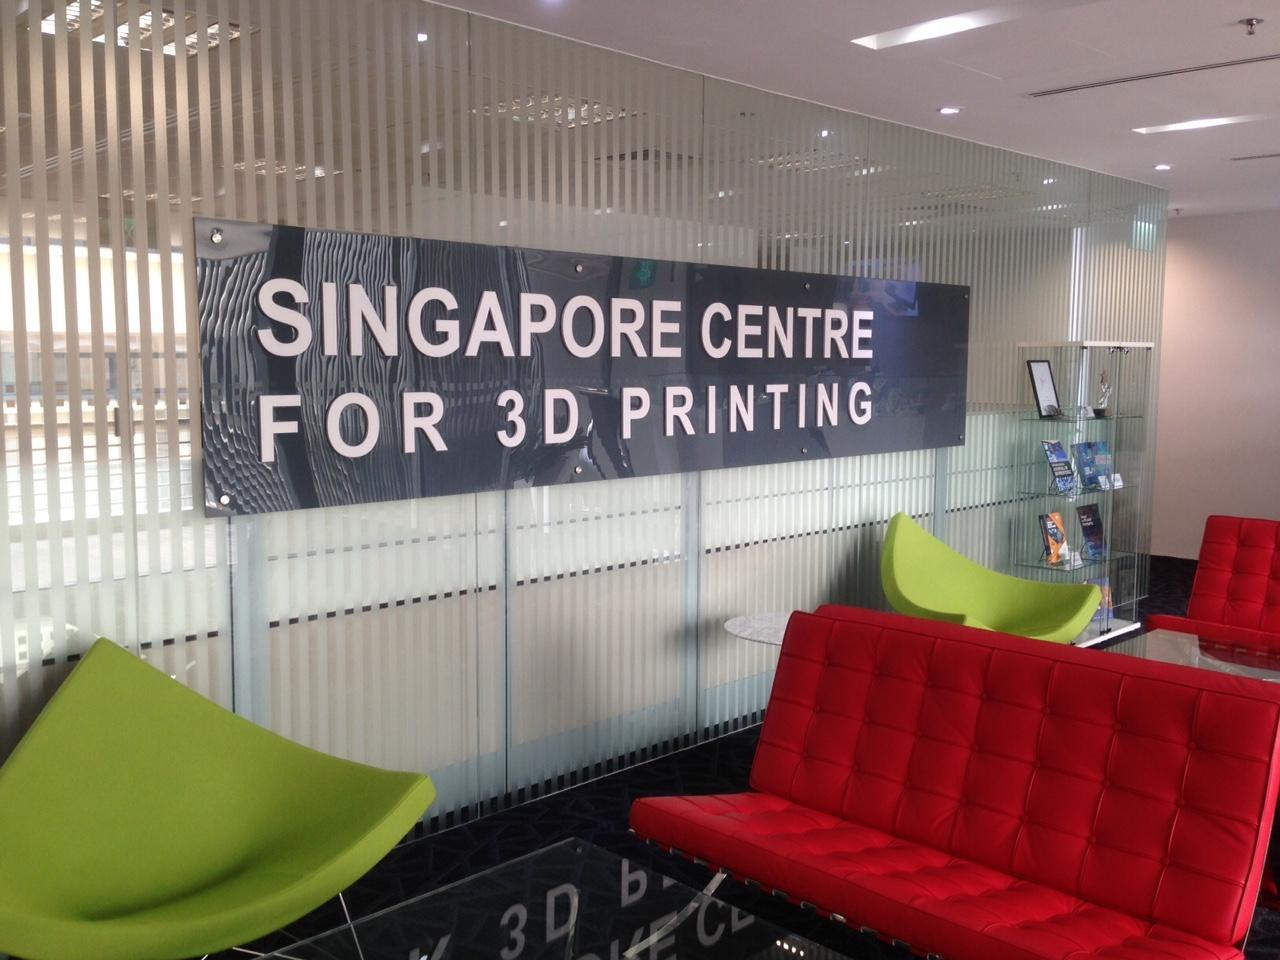 Inside the Singapore Centre for 3D Printing. Photo via SC3DP.